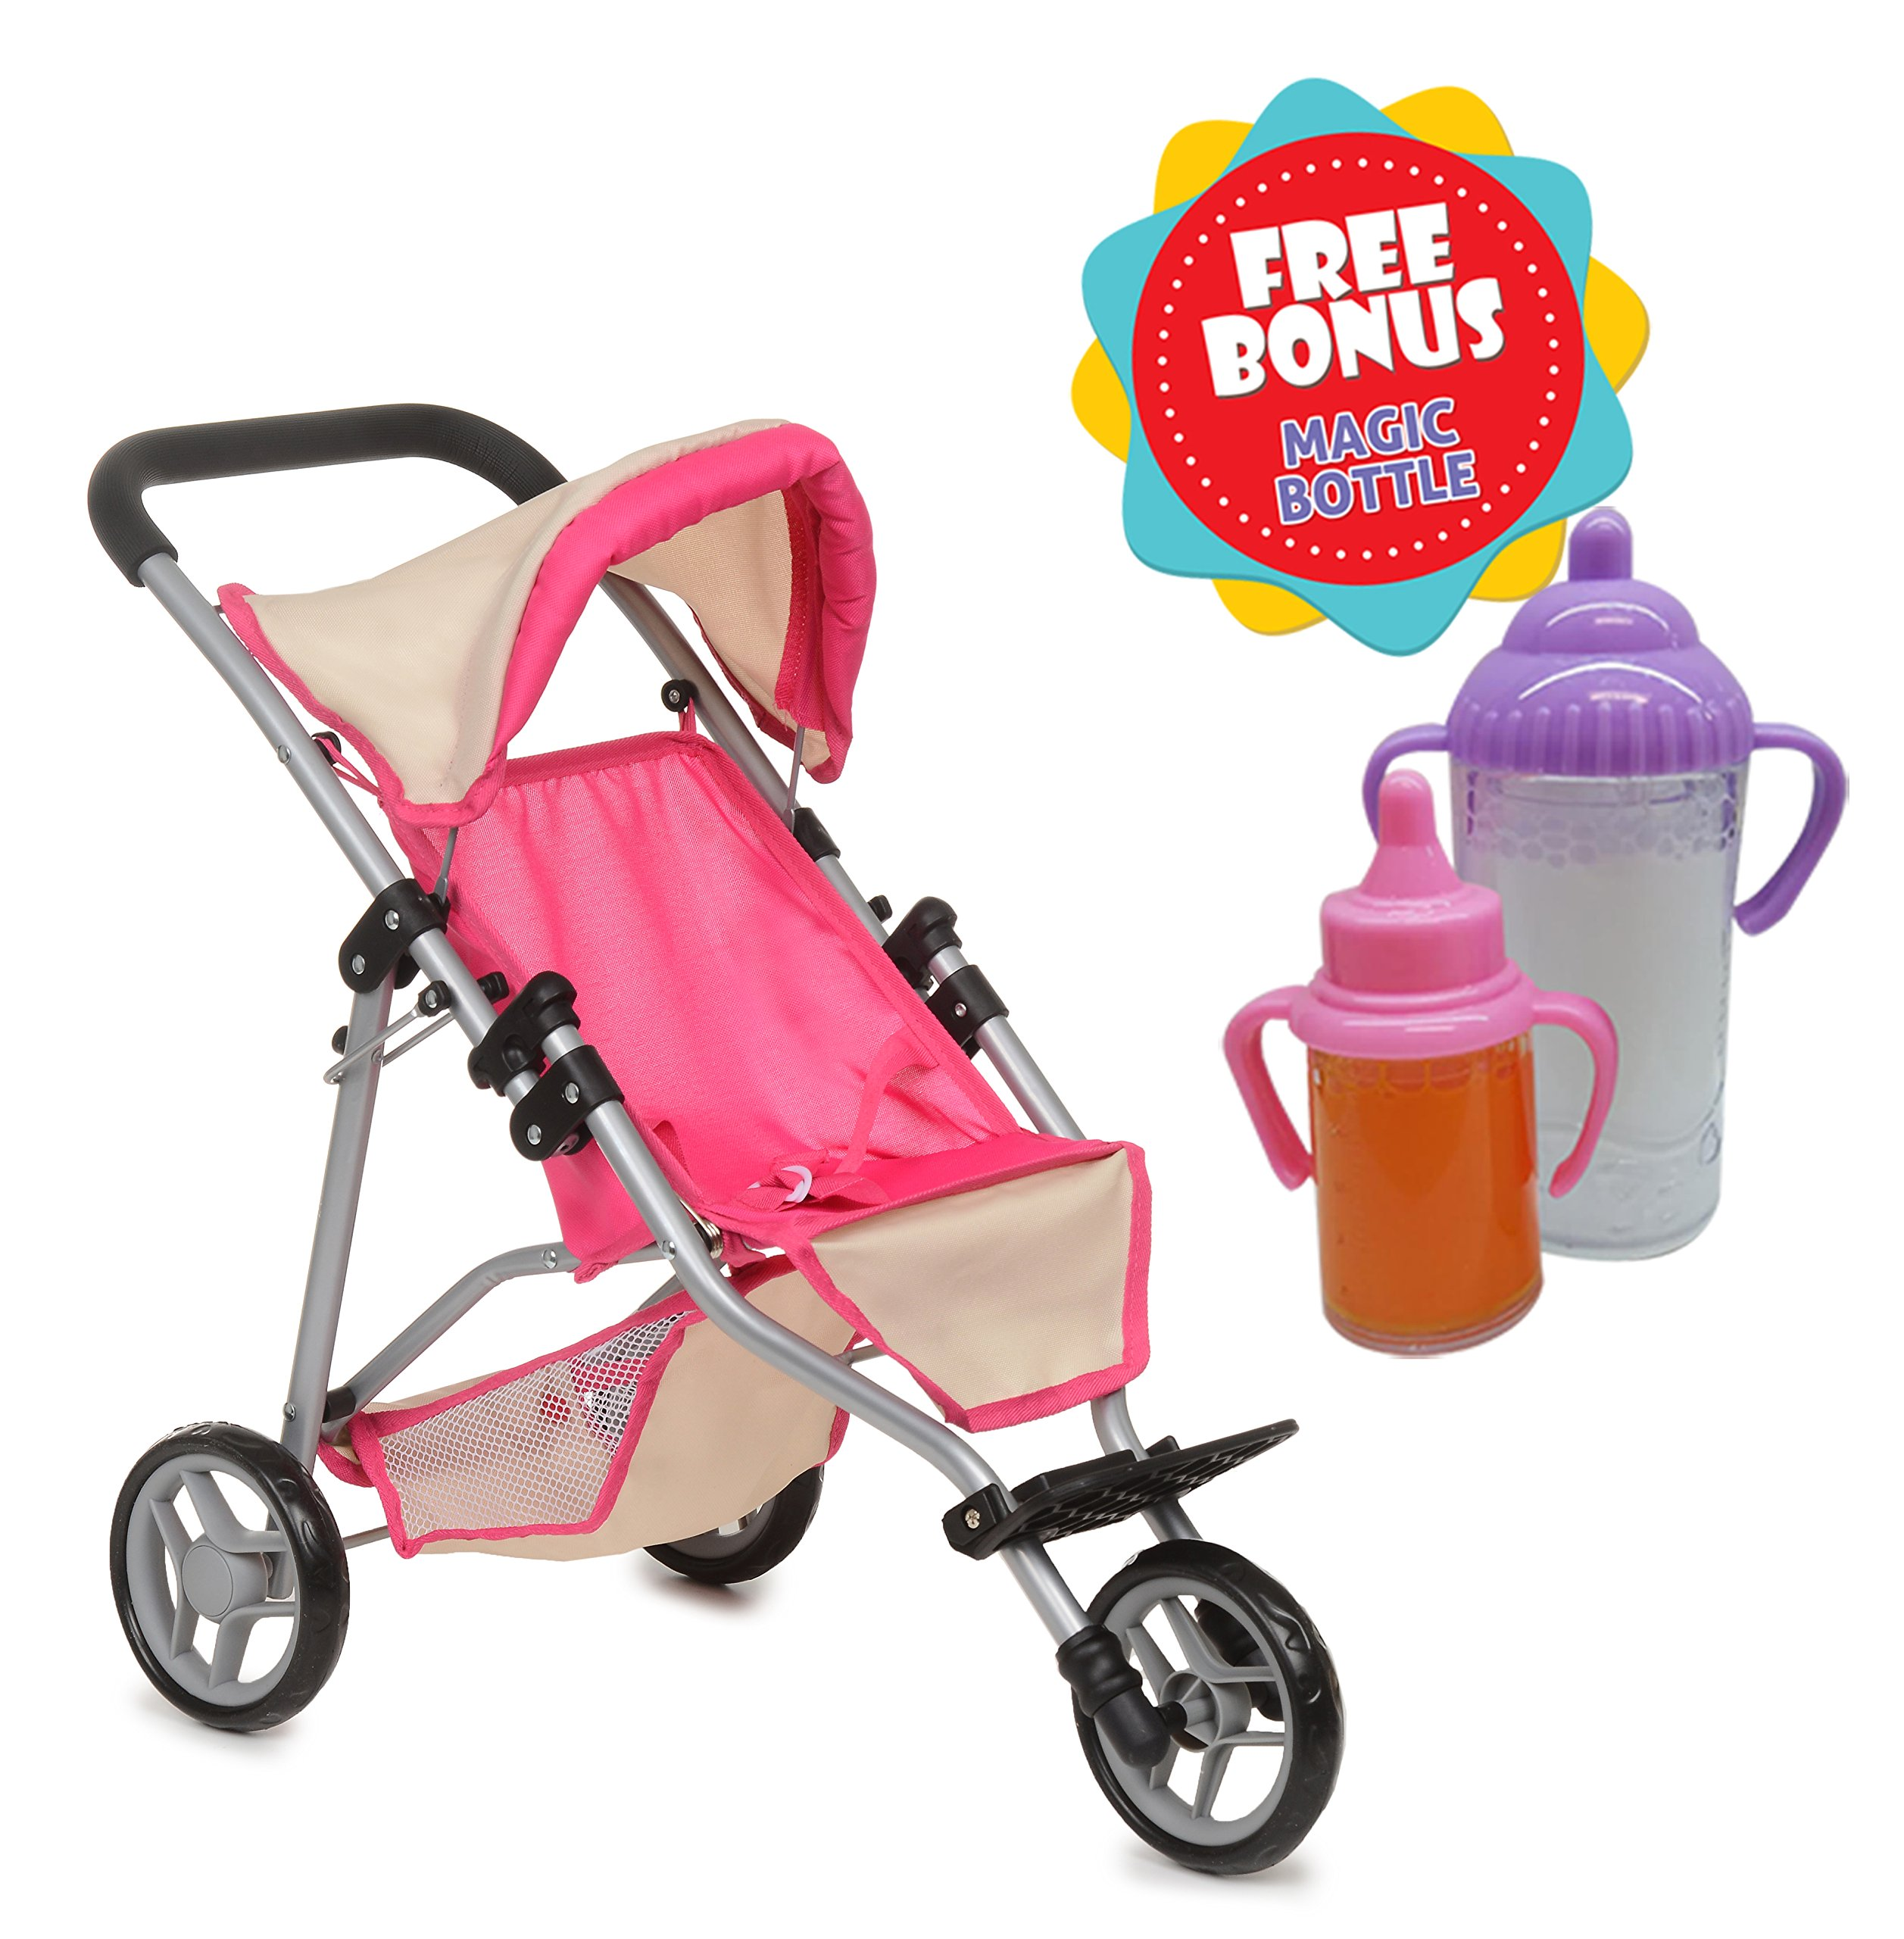 Exquisite Buggy, My First Doll Jogger Stroller - Soft Pink & Off-white Design - Free Bonus Magic Bottles